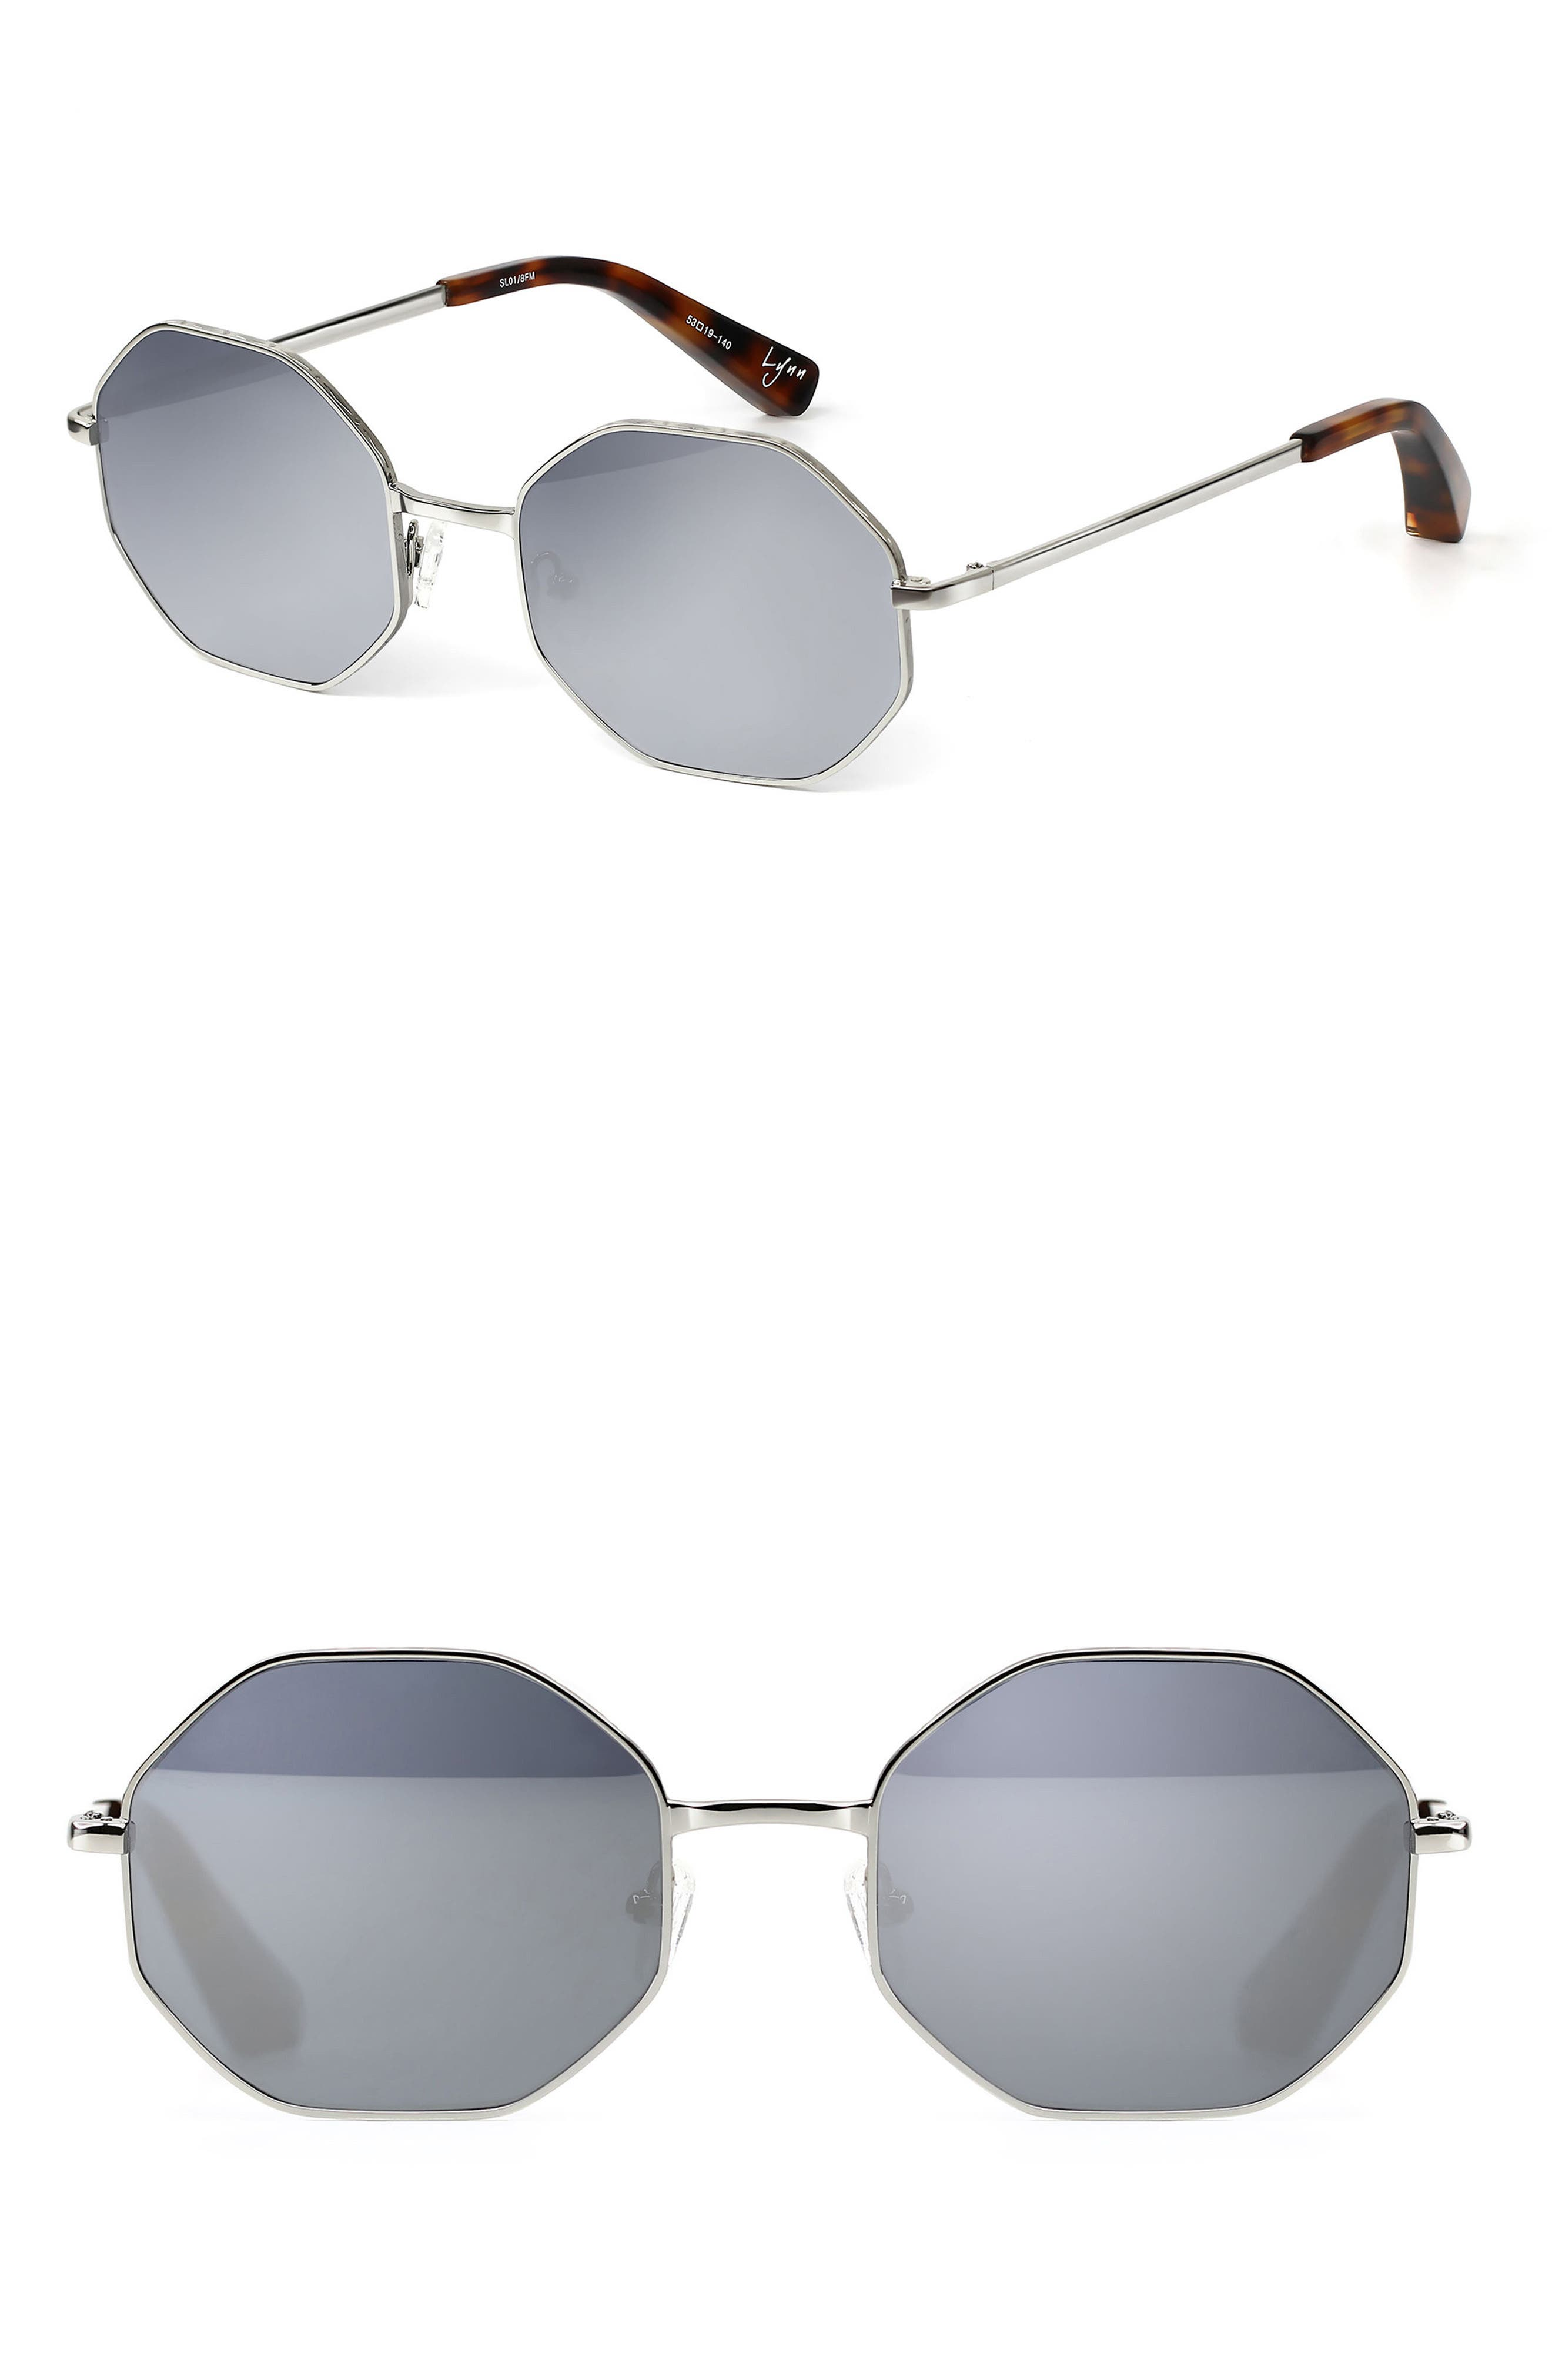 Lynn 53mm Octagonal Lens Sunglasses,                         Main,                         color, Silver/ Silver